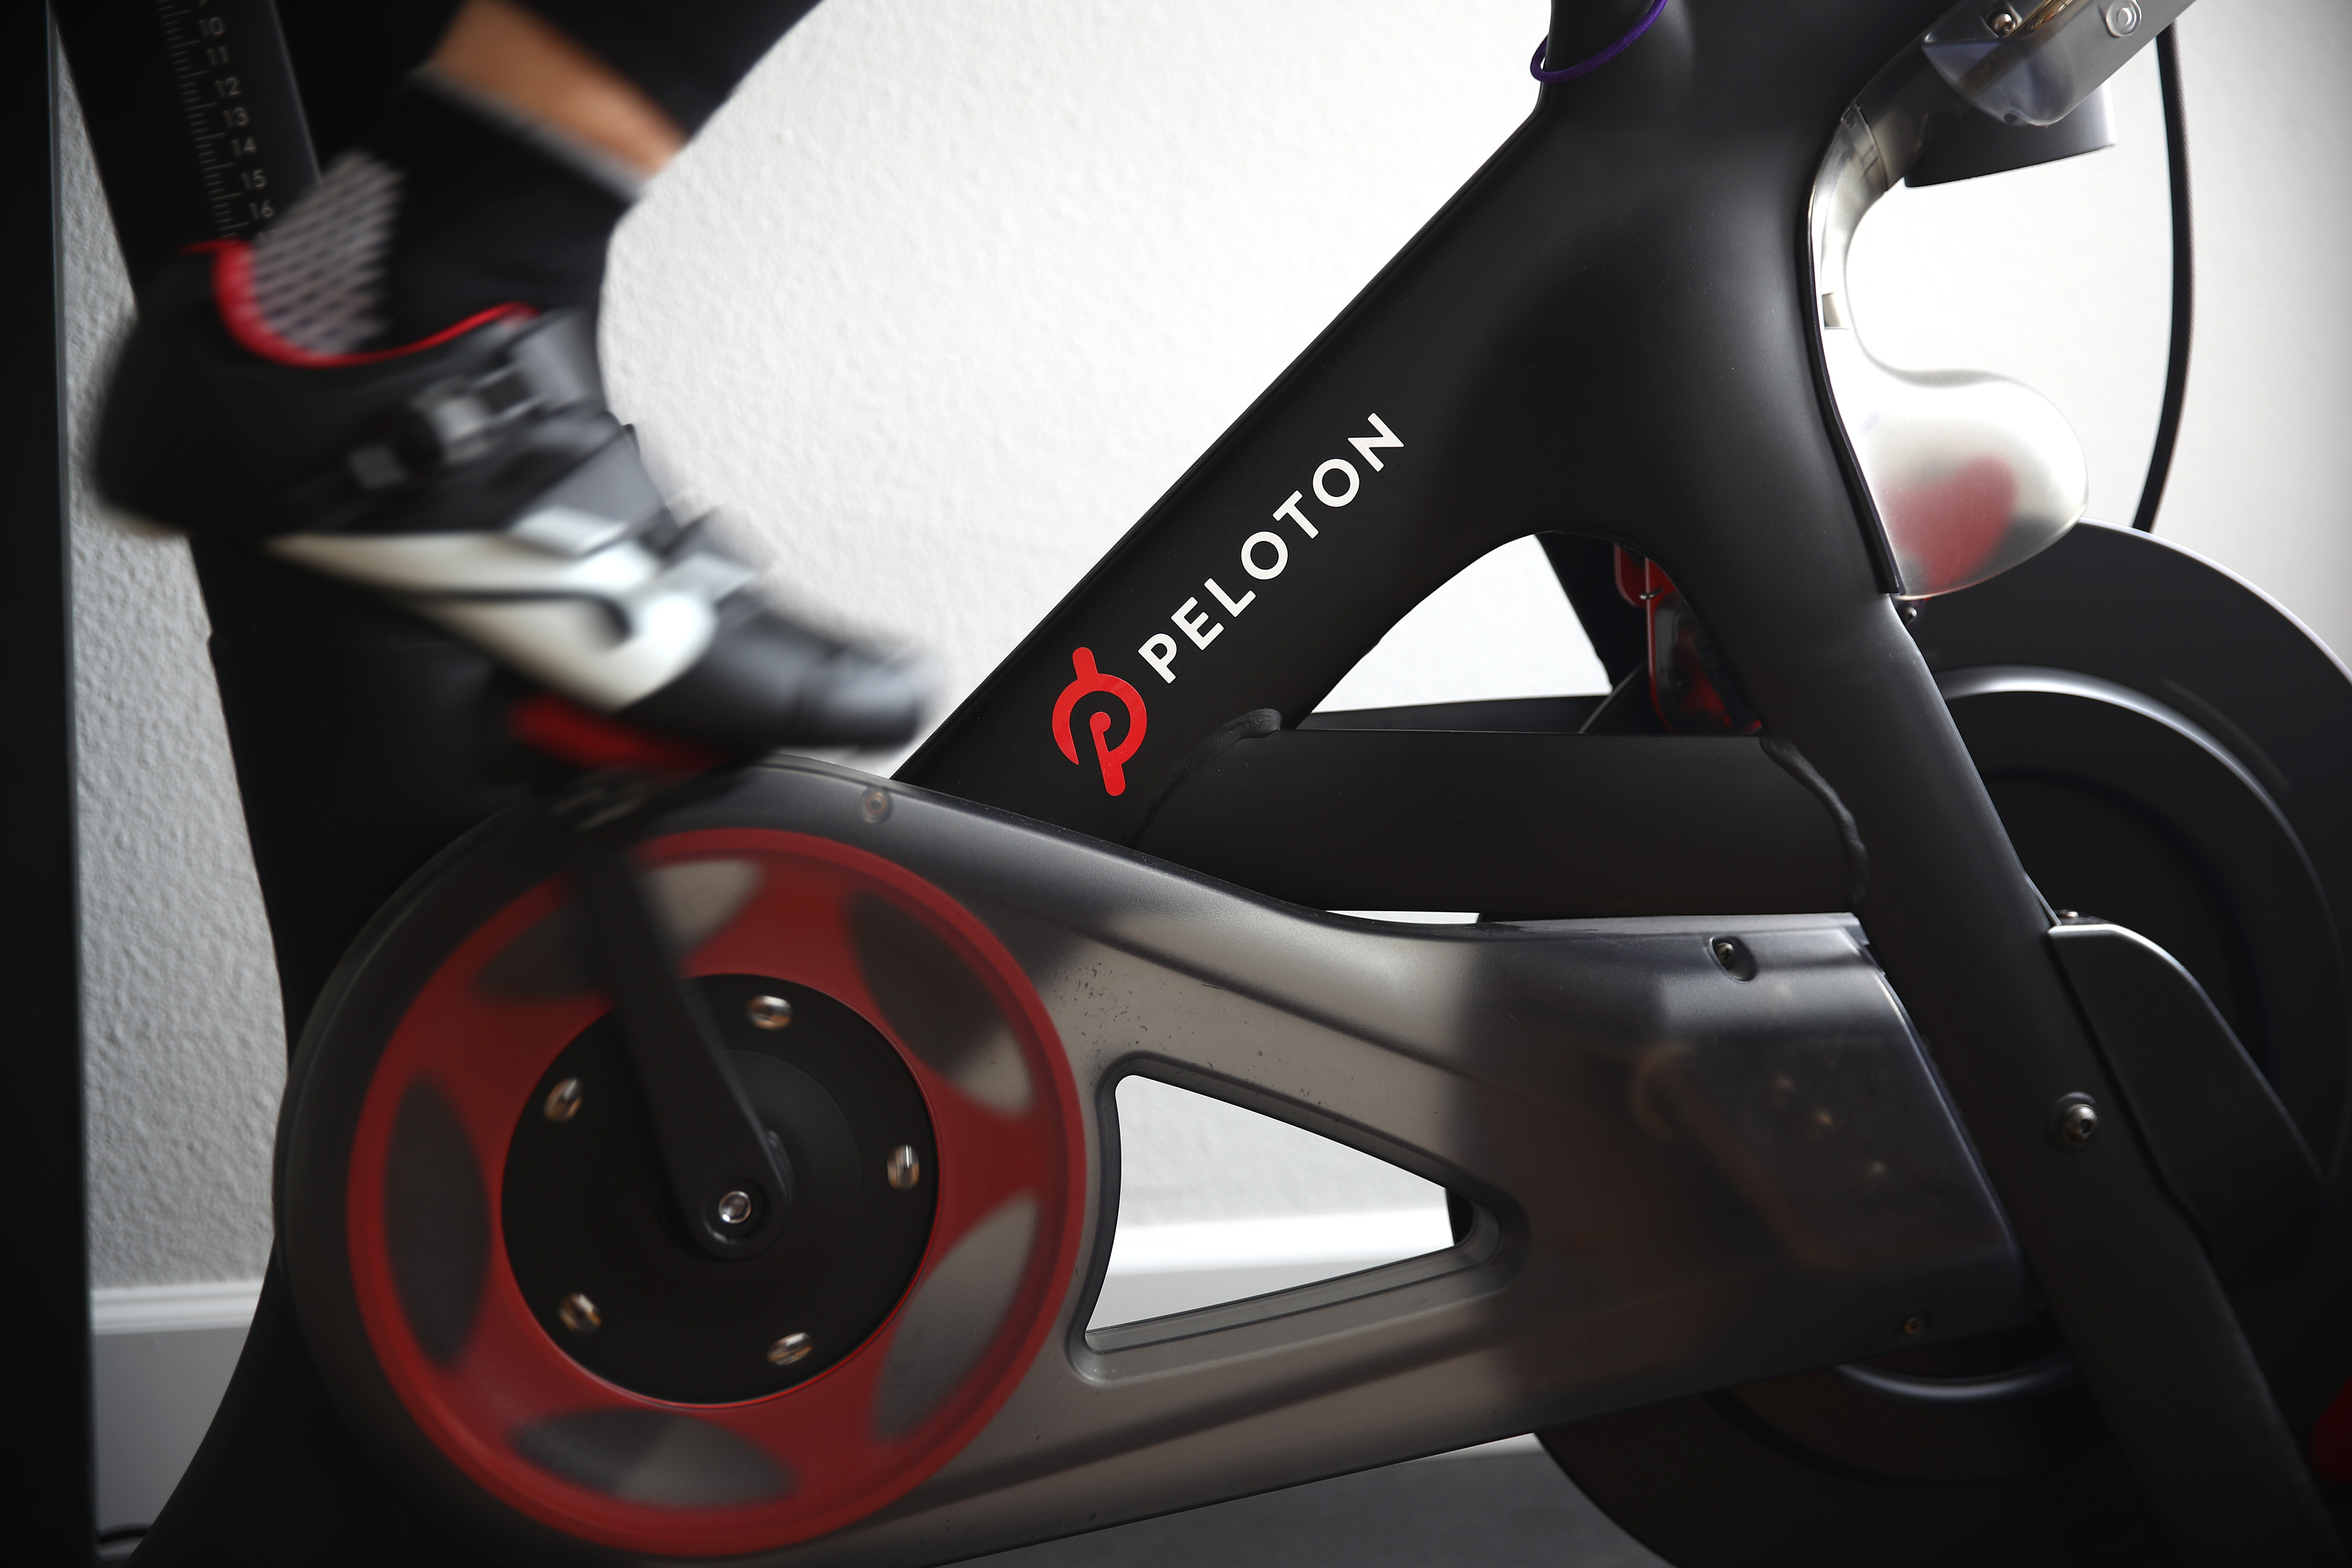 Coronavirus: Peloton cancels live classes after employee tests positive for COVID-19